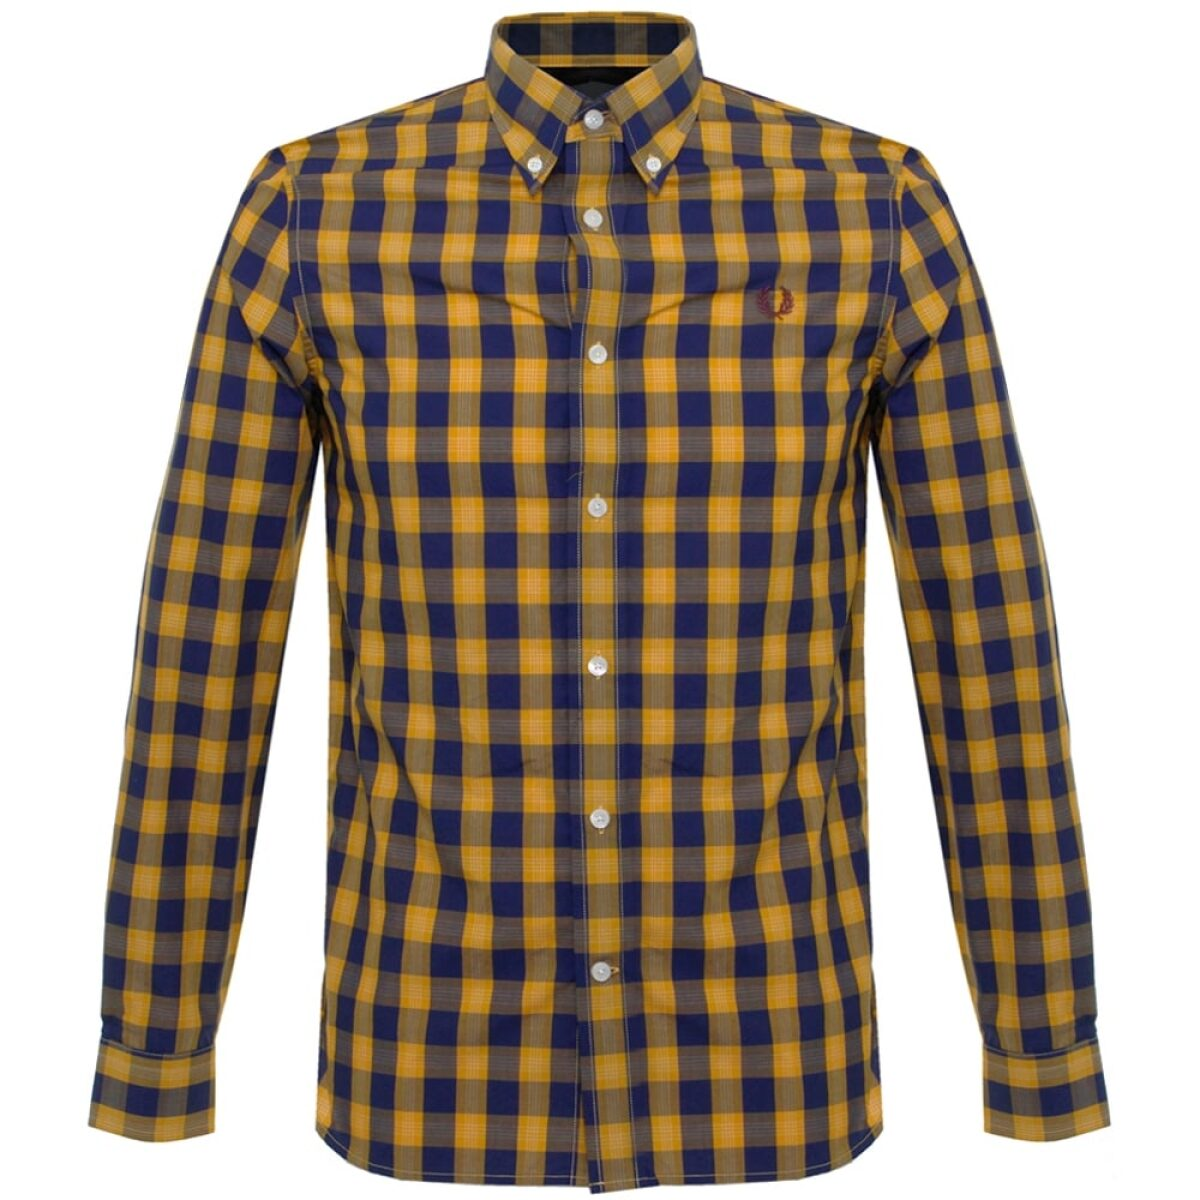 fred perry fred perry tartan gingham mustard shirt m8274 886 p23978 91039 zoom